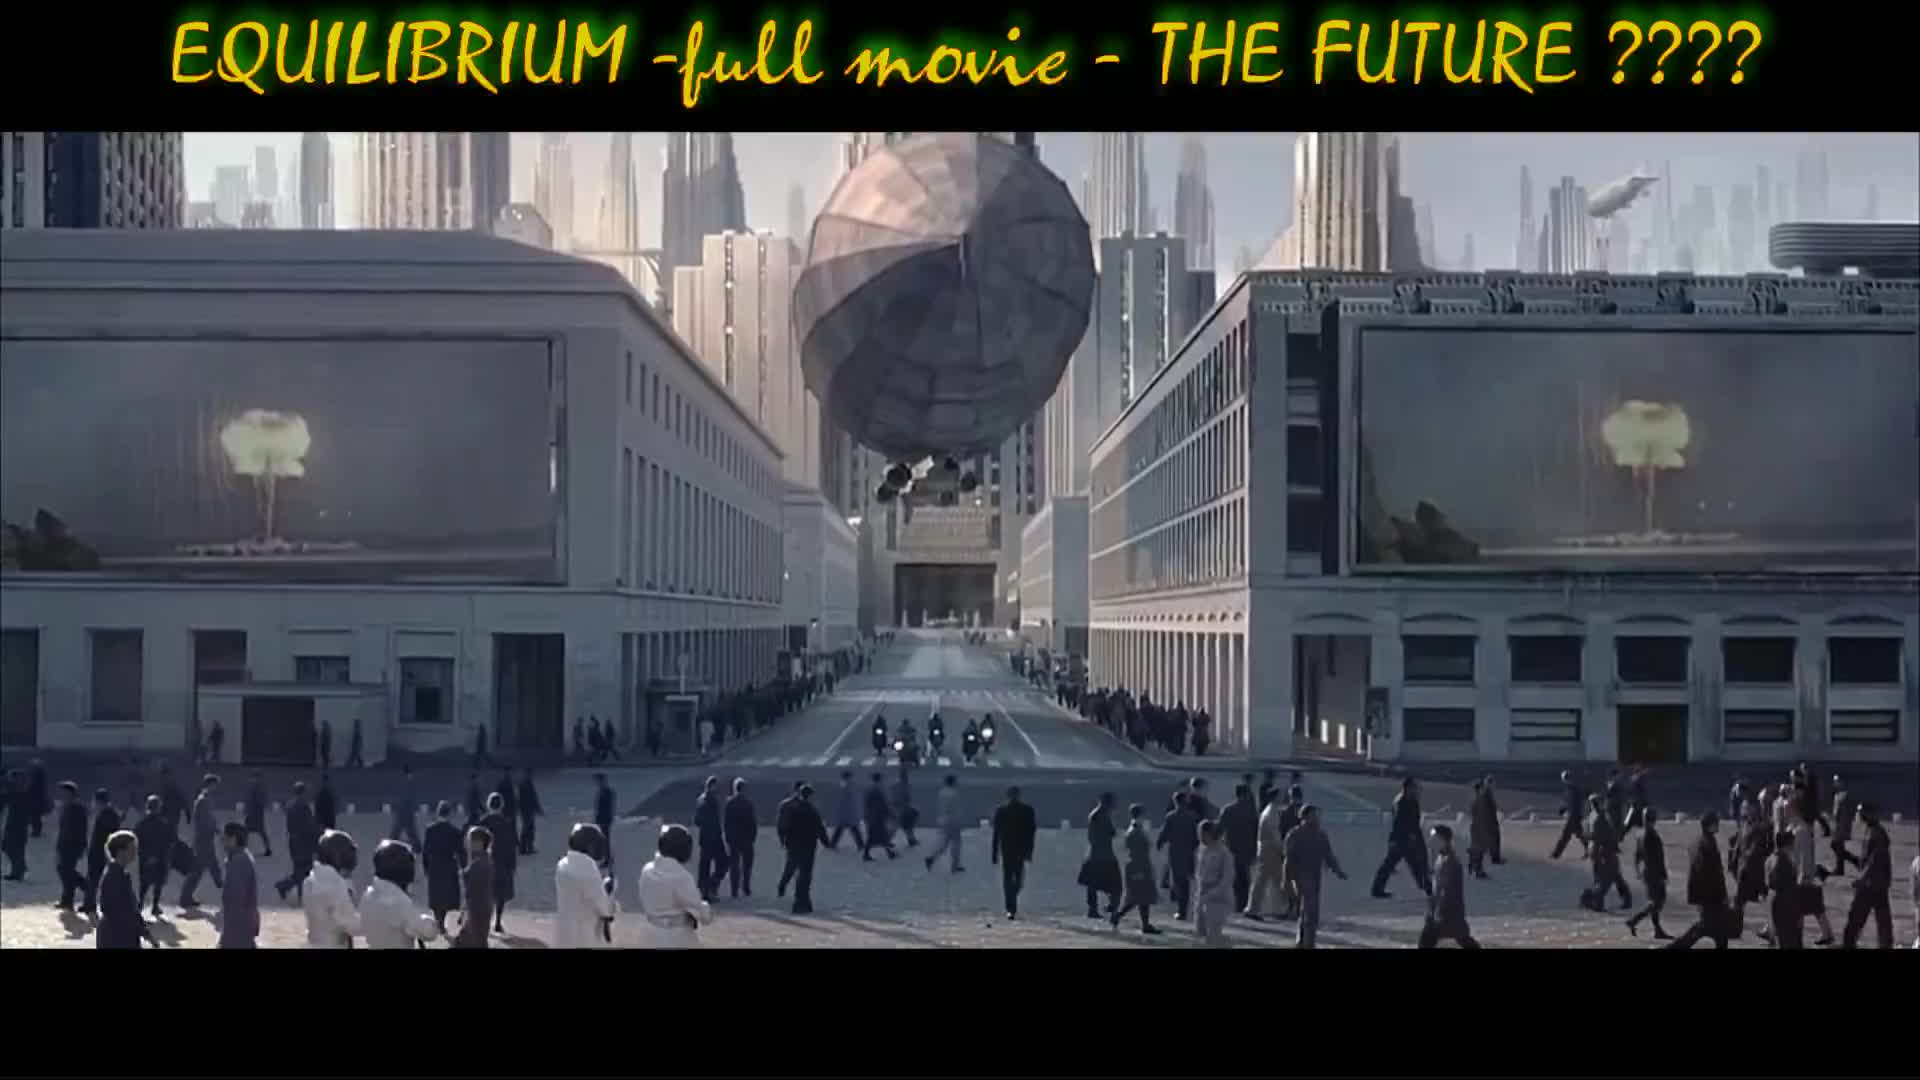 TruTube WDRM Radio music and info- EQUILIBRIUM- full movie - THE FUTURE ???? -YOU BE THE JUDGE ON THE HIDDEN MESSAGE ??? on 1585206465